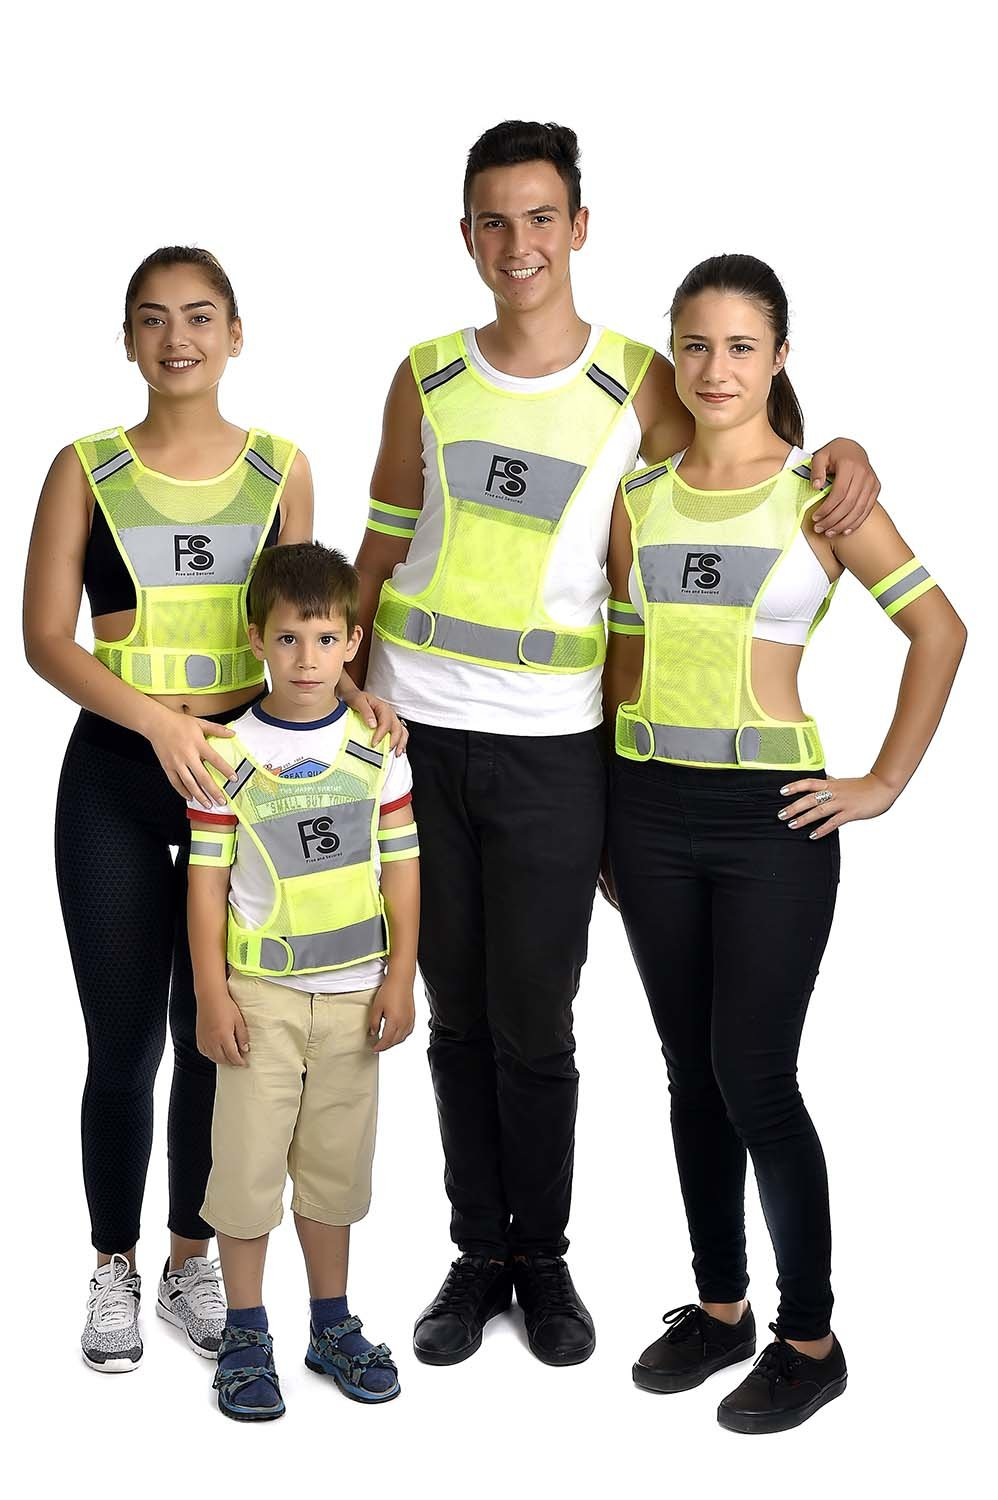 Nighttime and Daytime Visibility Safety Reflective Vest for Running Walking Cycling High Visibility Lightweight Jogging Motorcycling Gear With 360 Reflector Made of High Quality Polyester